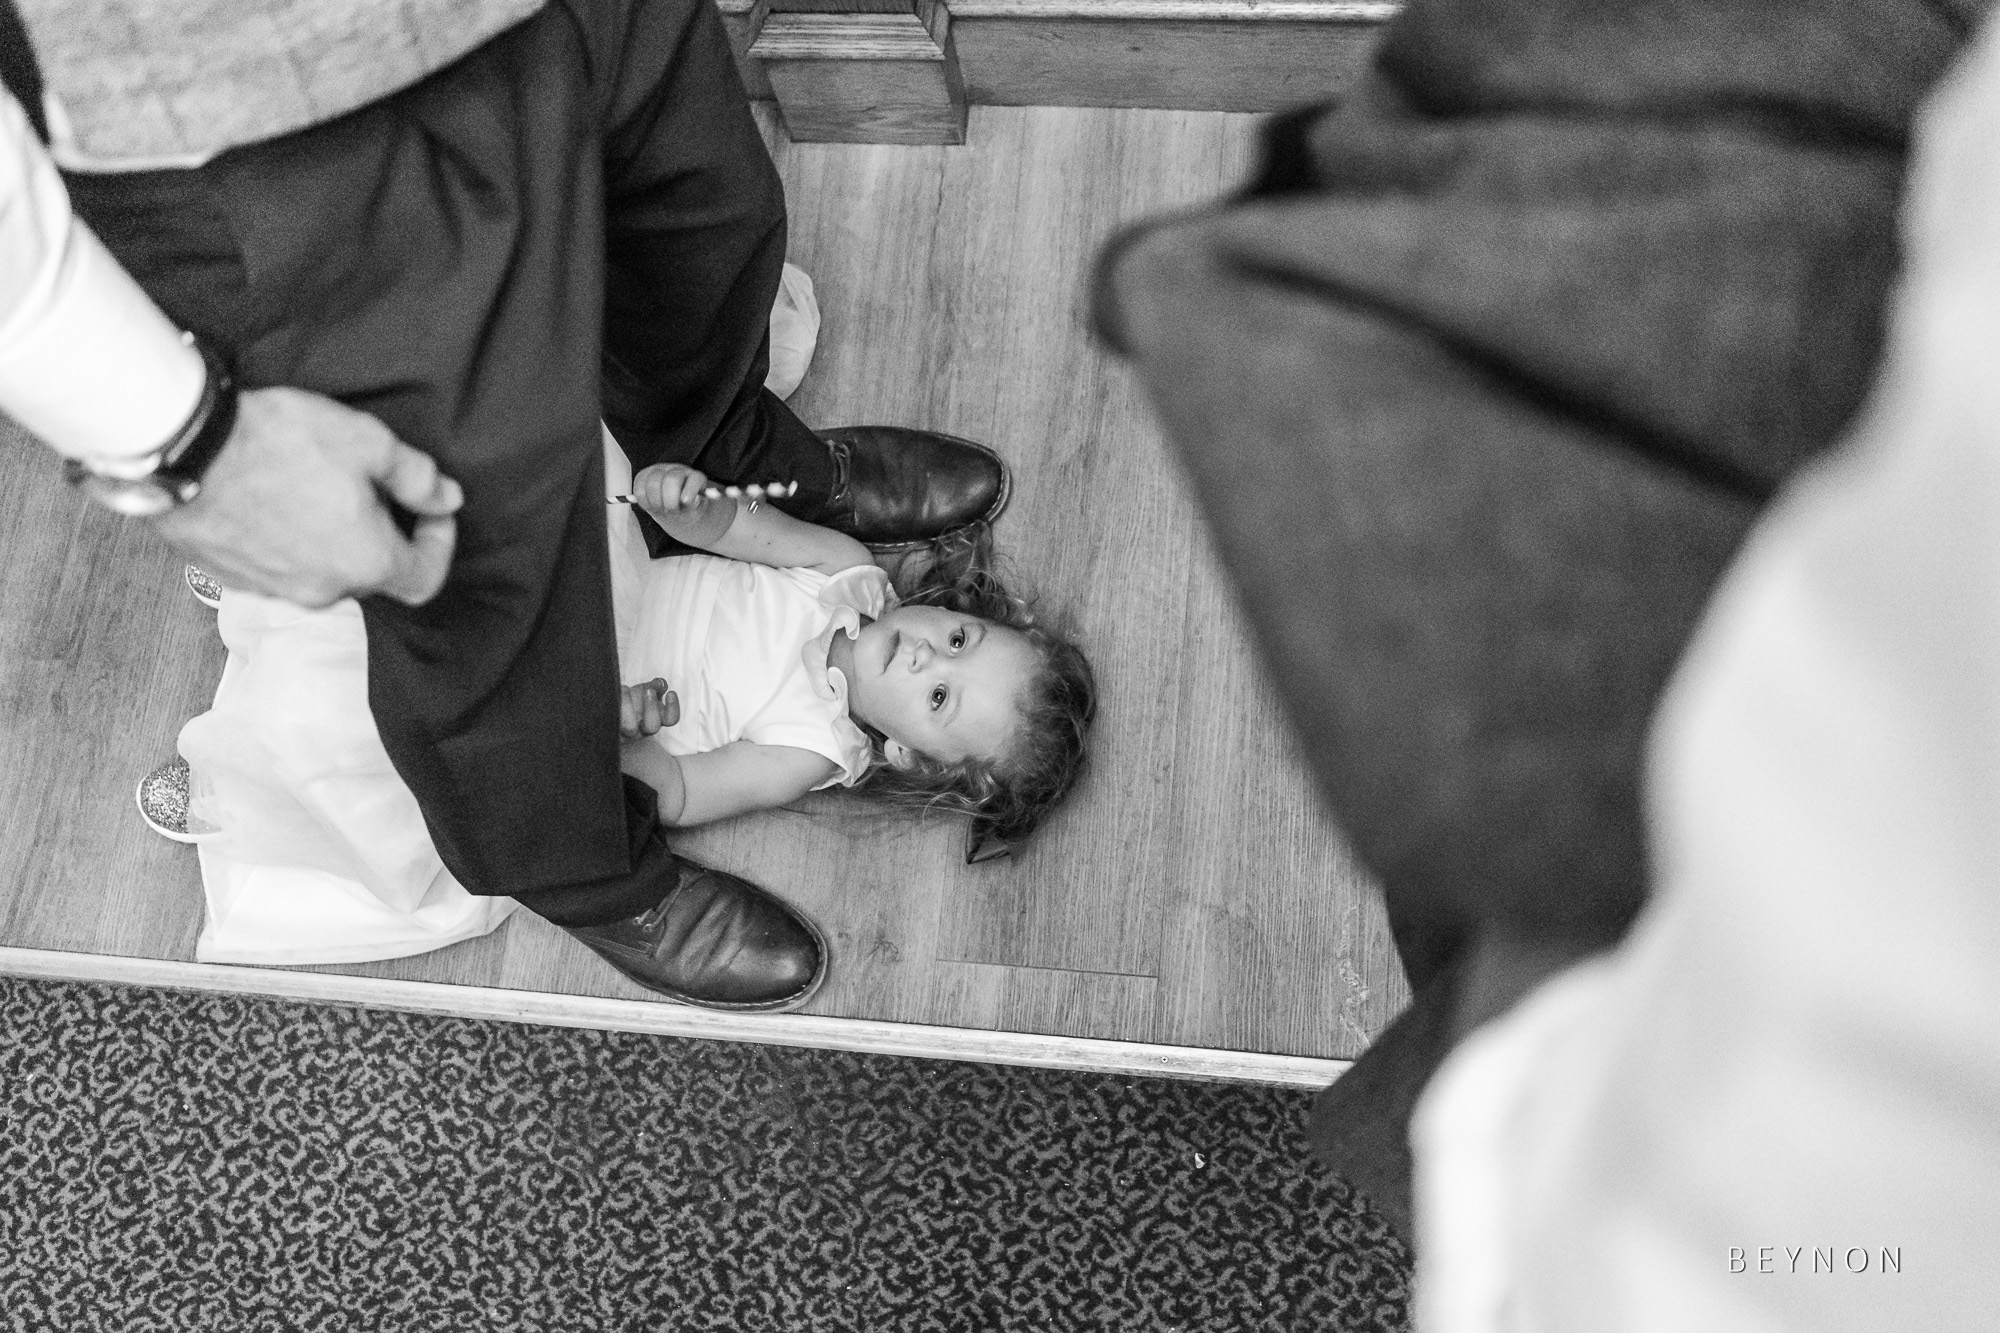 Small child lying on the floor